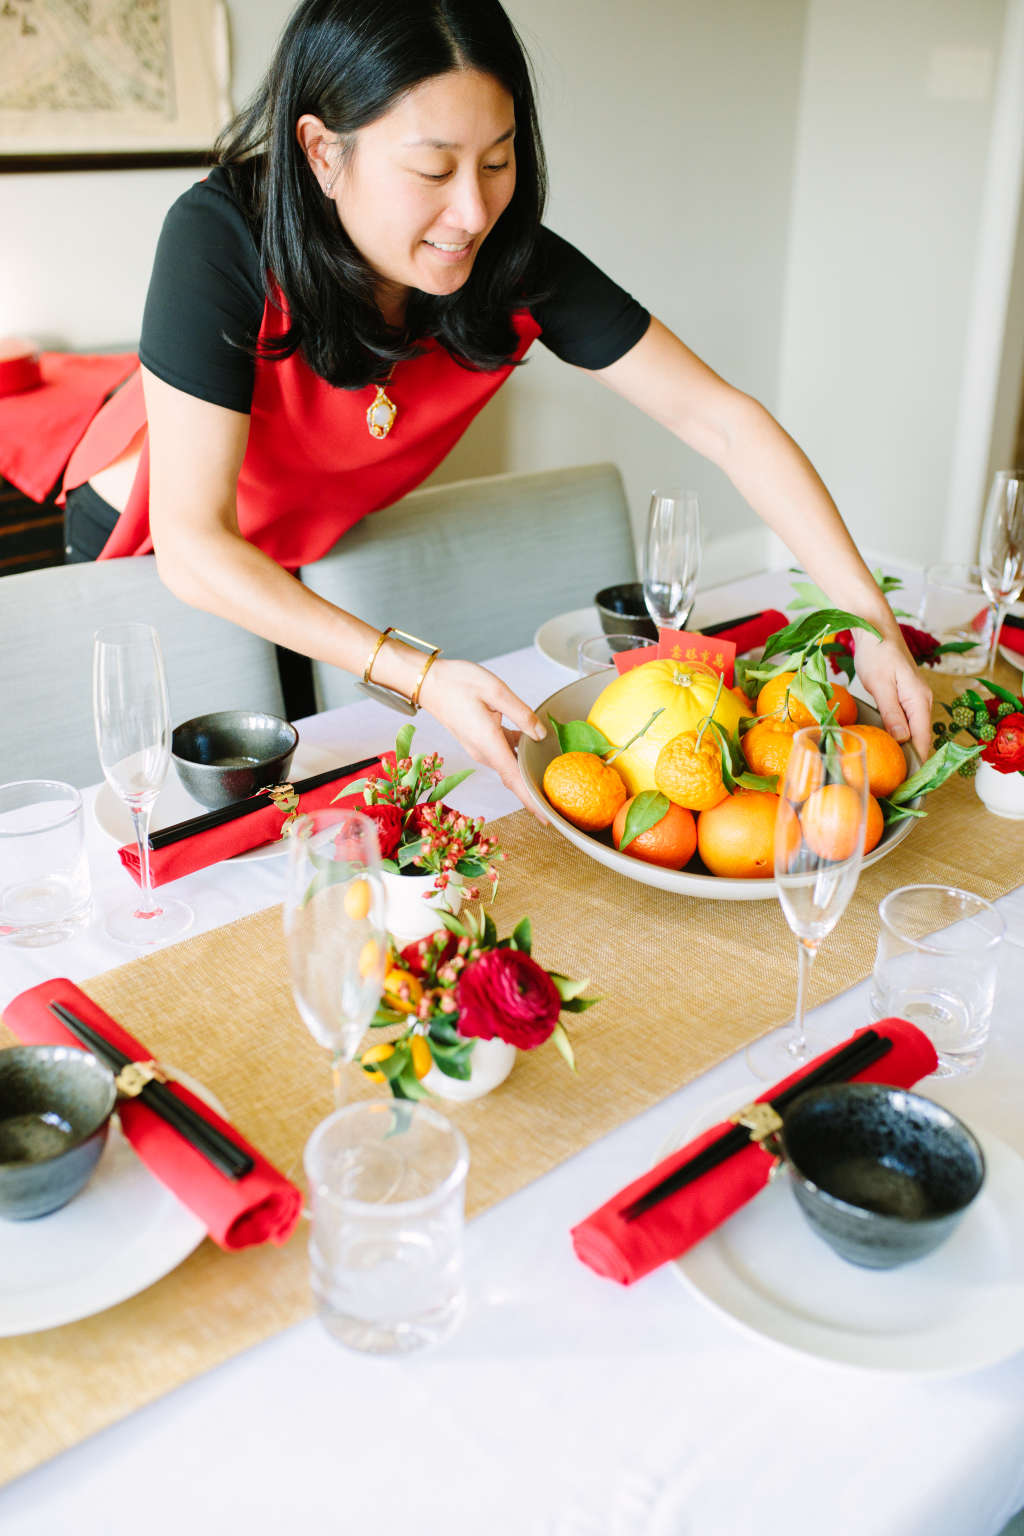 How I'm Creating My Own Lunar New Year Traditions